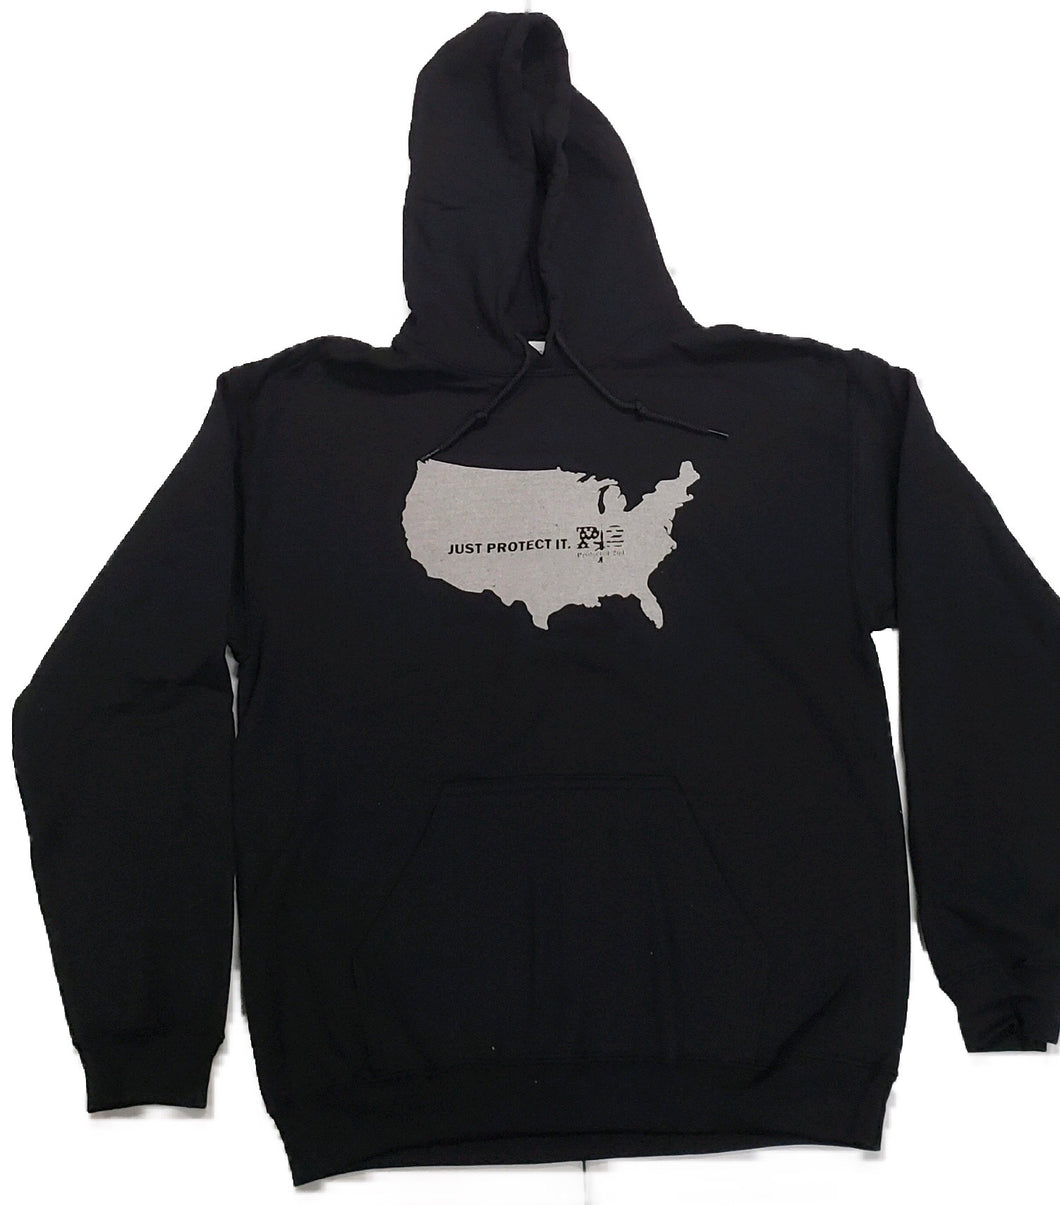 Just Protect It. - America Hoodie